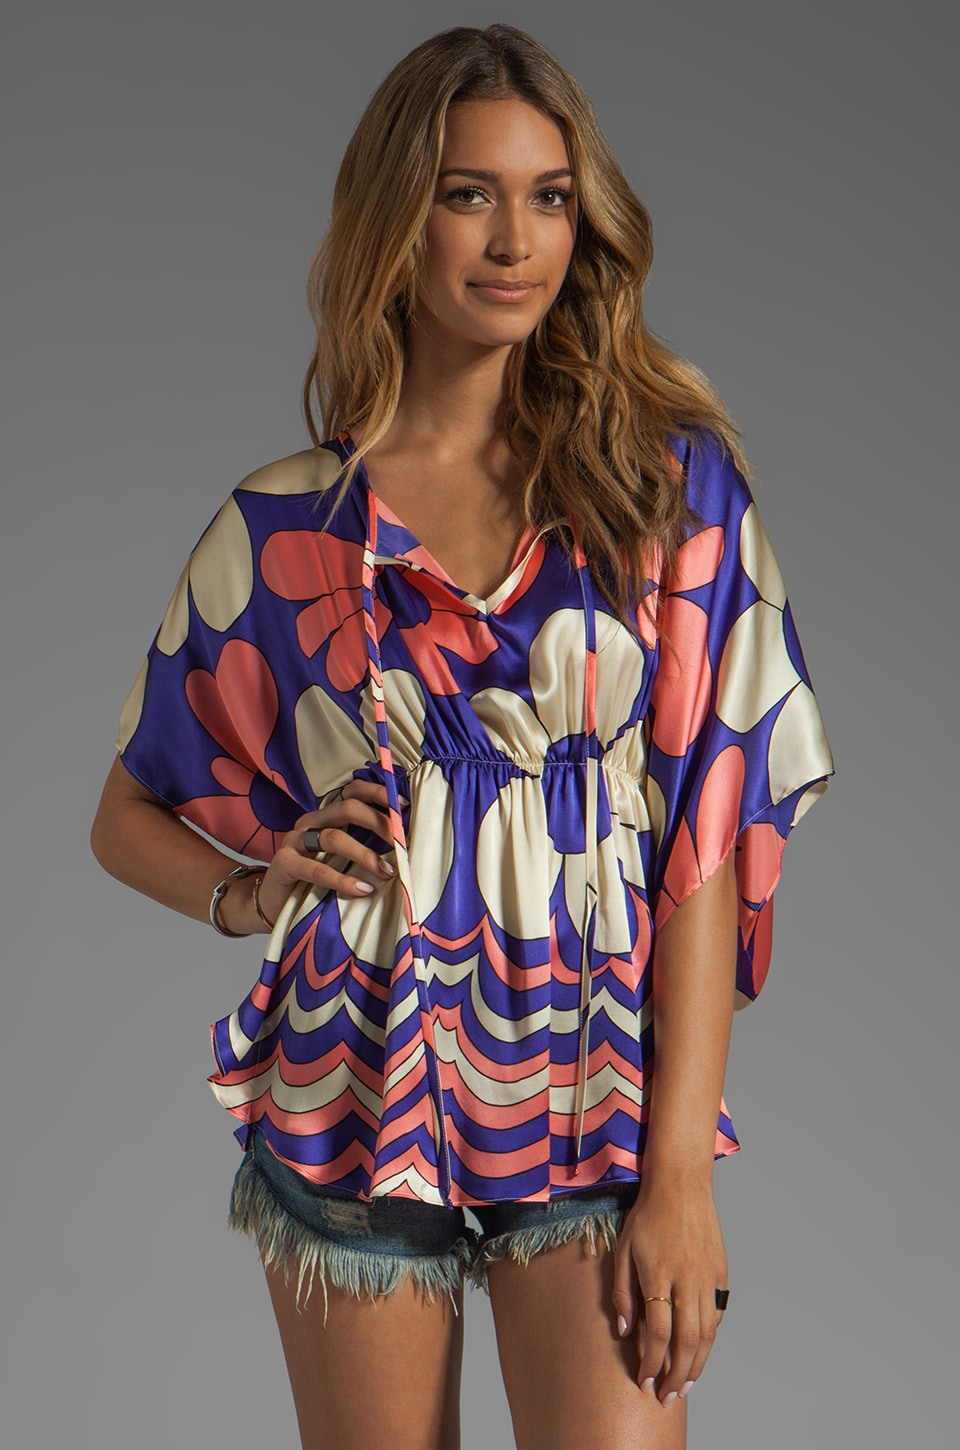 VOOM by Joy Han Fiori Caftan Top in Purple